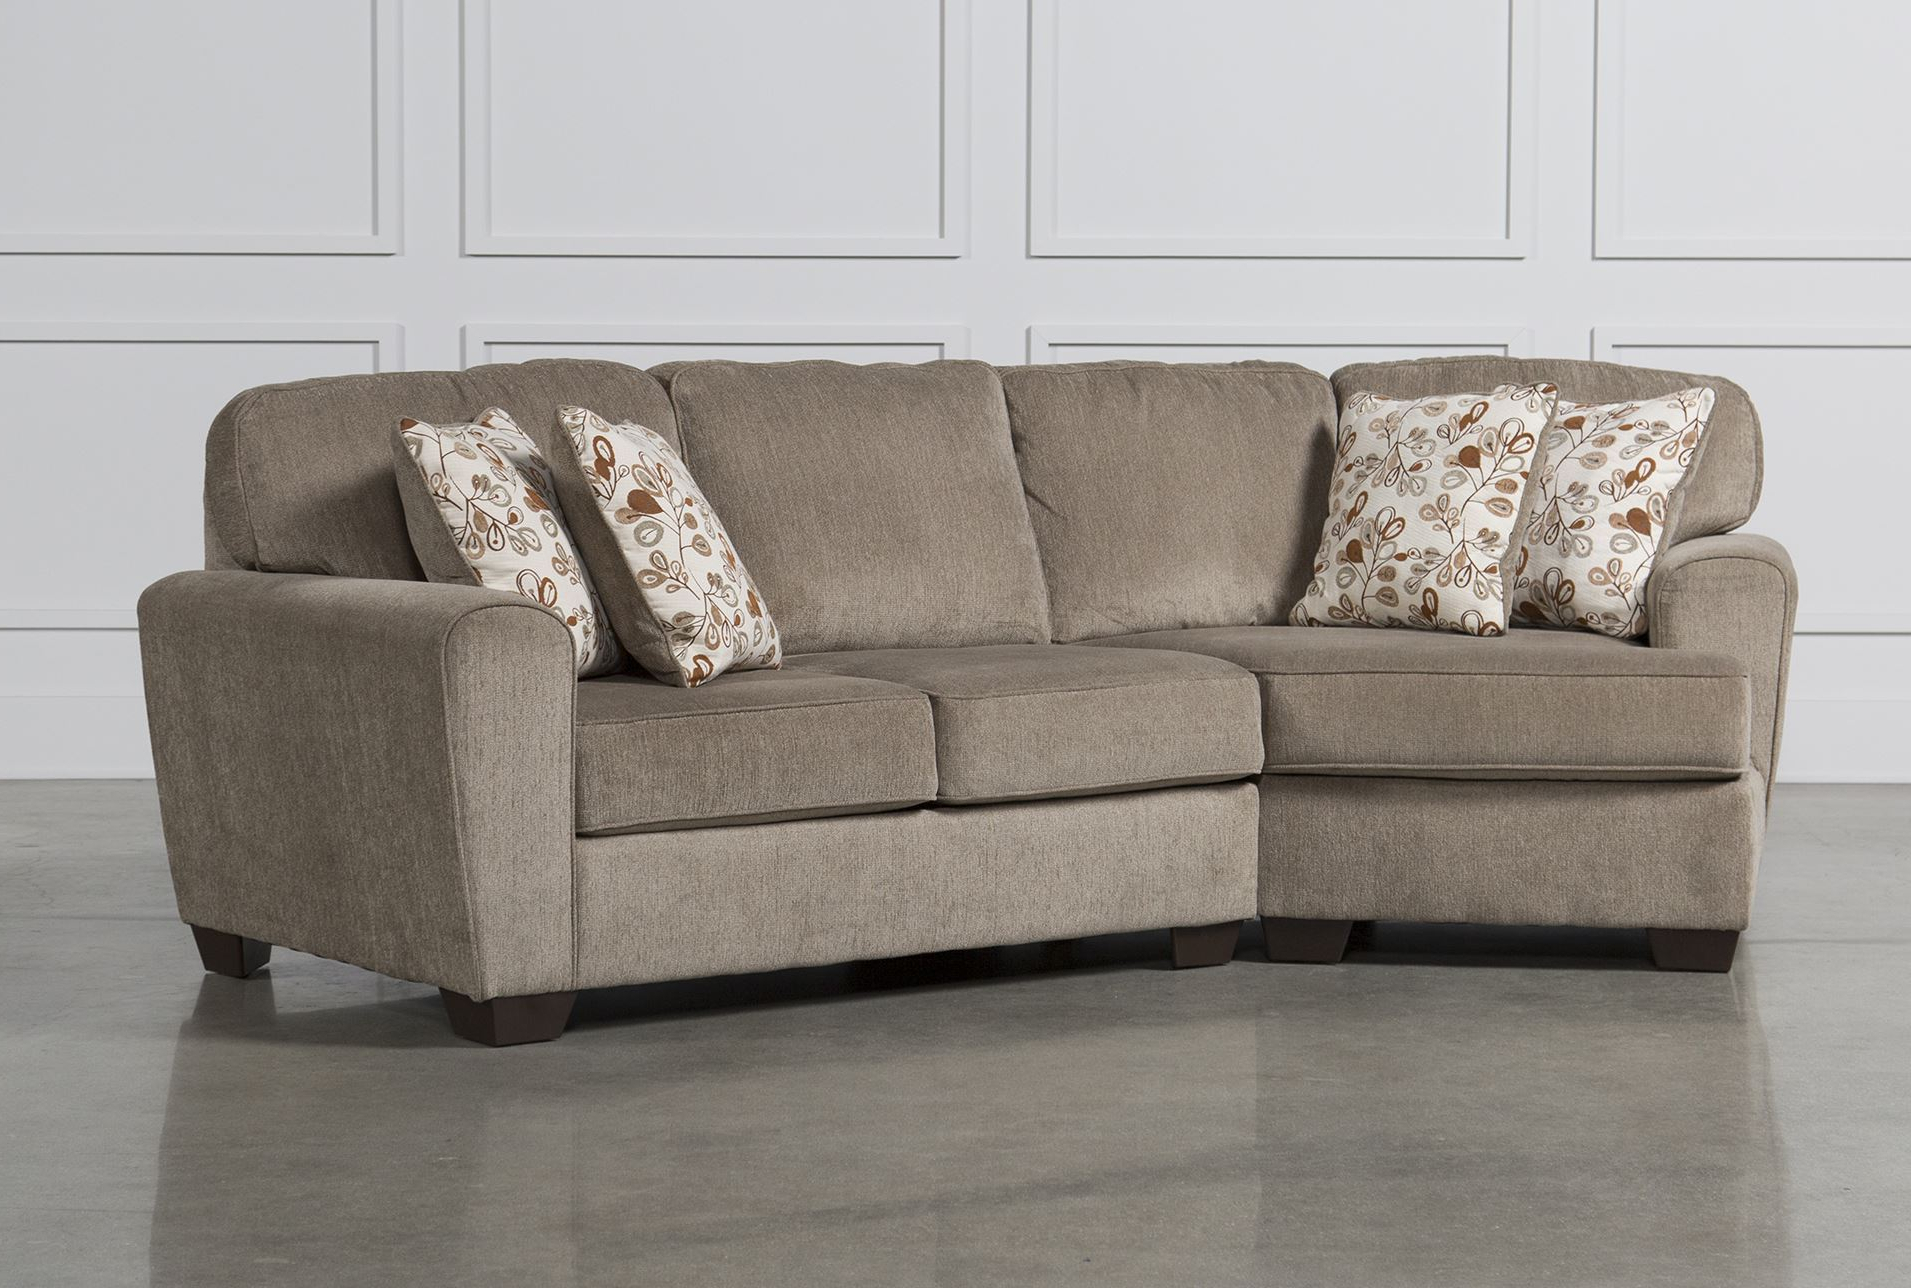 Awesome Collection Of 2 Piece Chaise Sectional In Kerri 2 Piece With Regard To Preferred Kerri 2 Piece Sectionals With Laf Chaise (View 12 of 20)